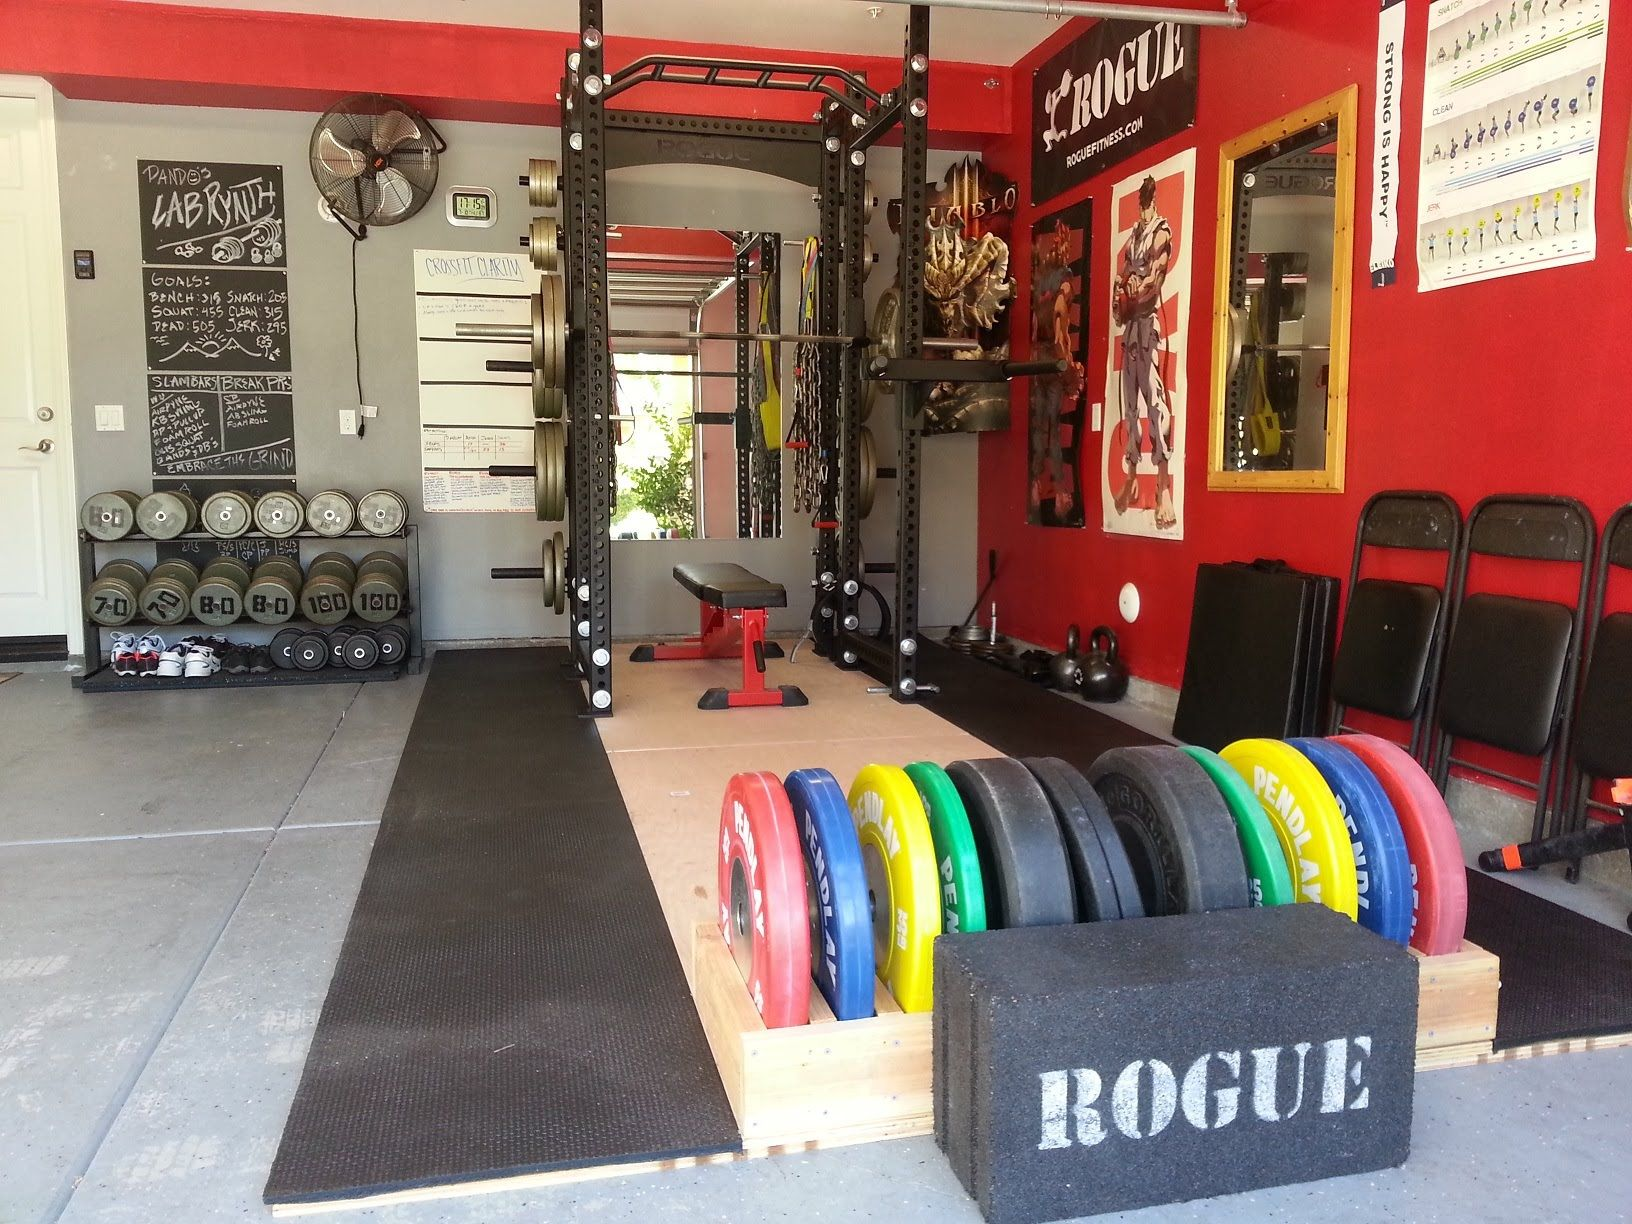 Garage workouts cut costs build muscle cbc sports